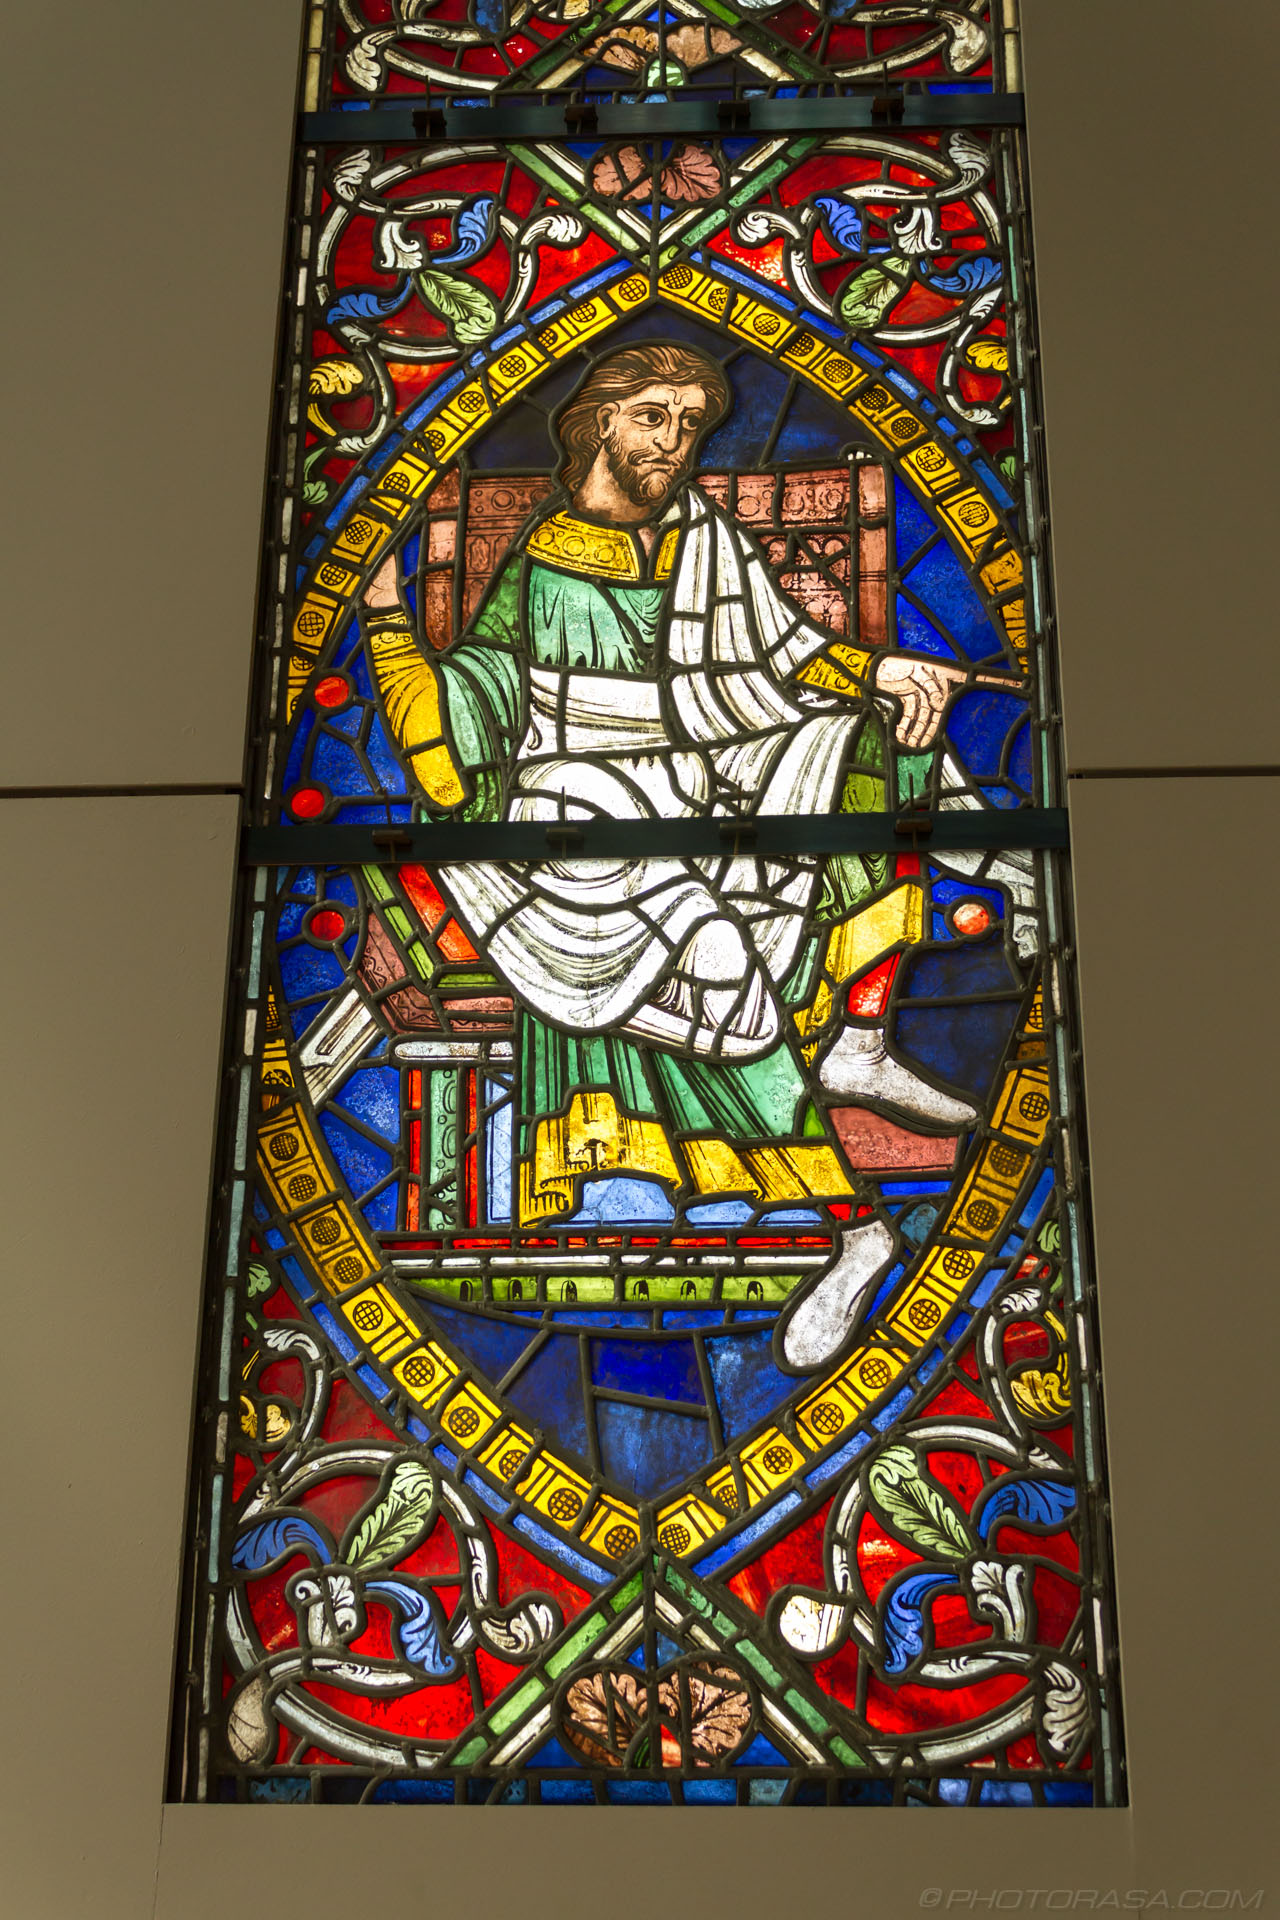 http://photorasa.com/places/cathedrals/genealogical-stained-glass-the-ancestors-of-jesus/attachment/josiah-stained-glass/